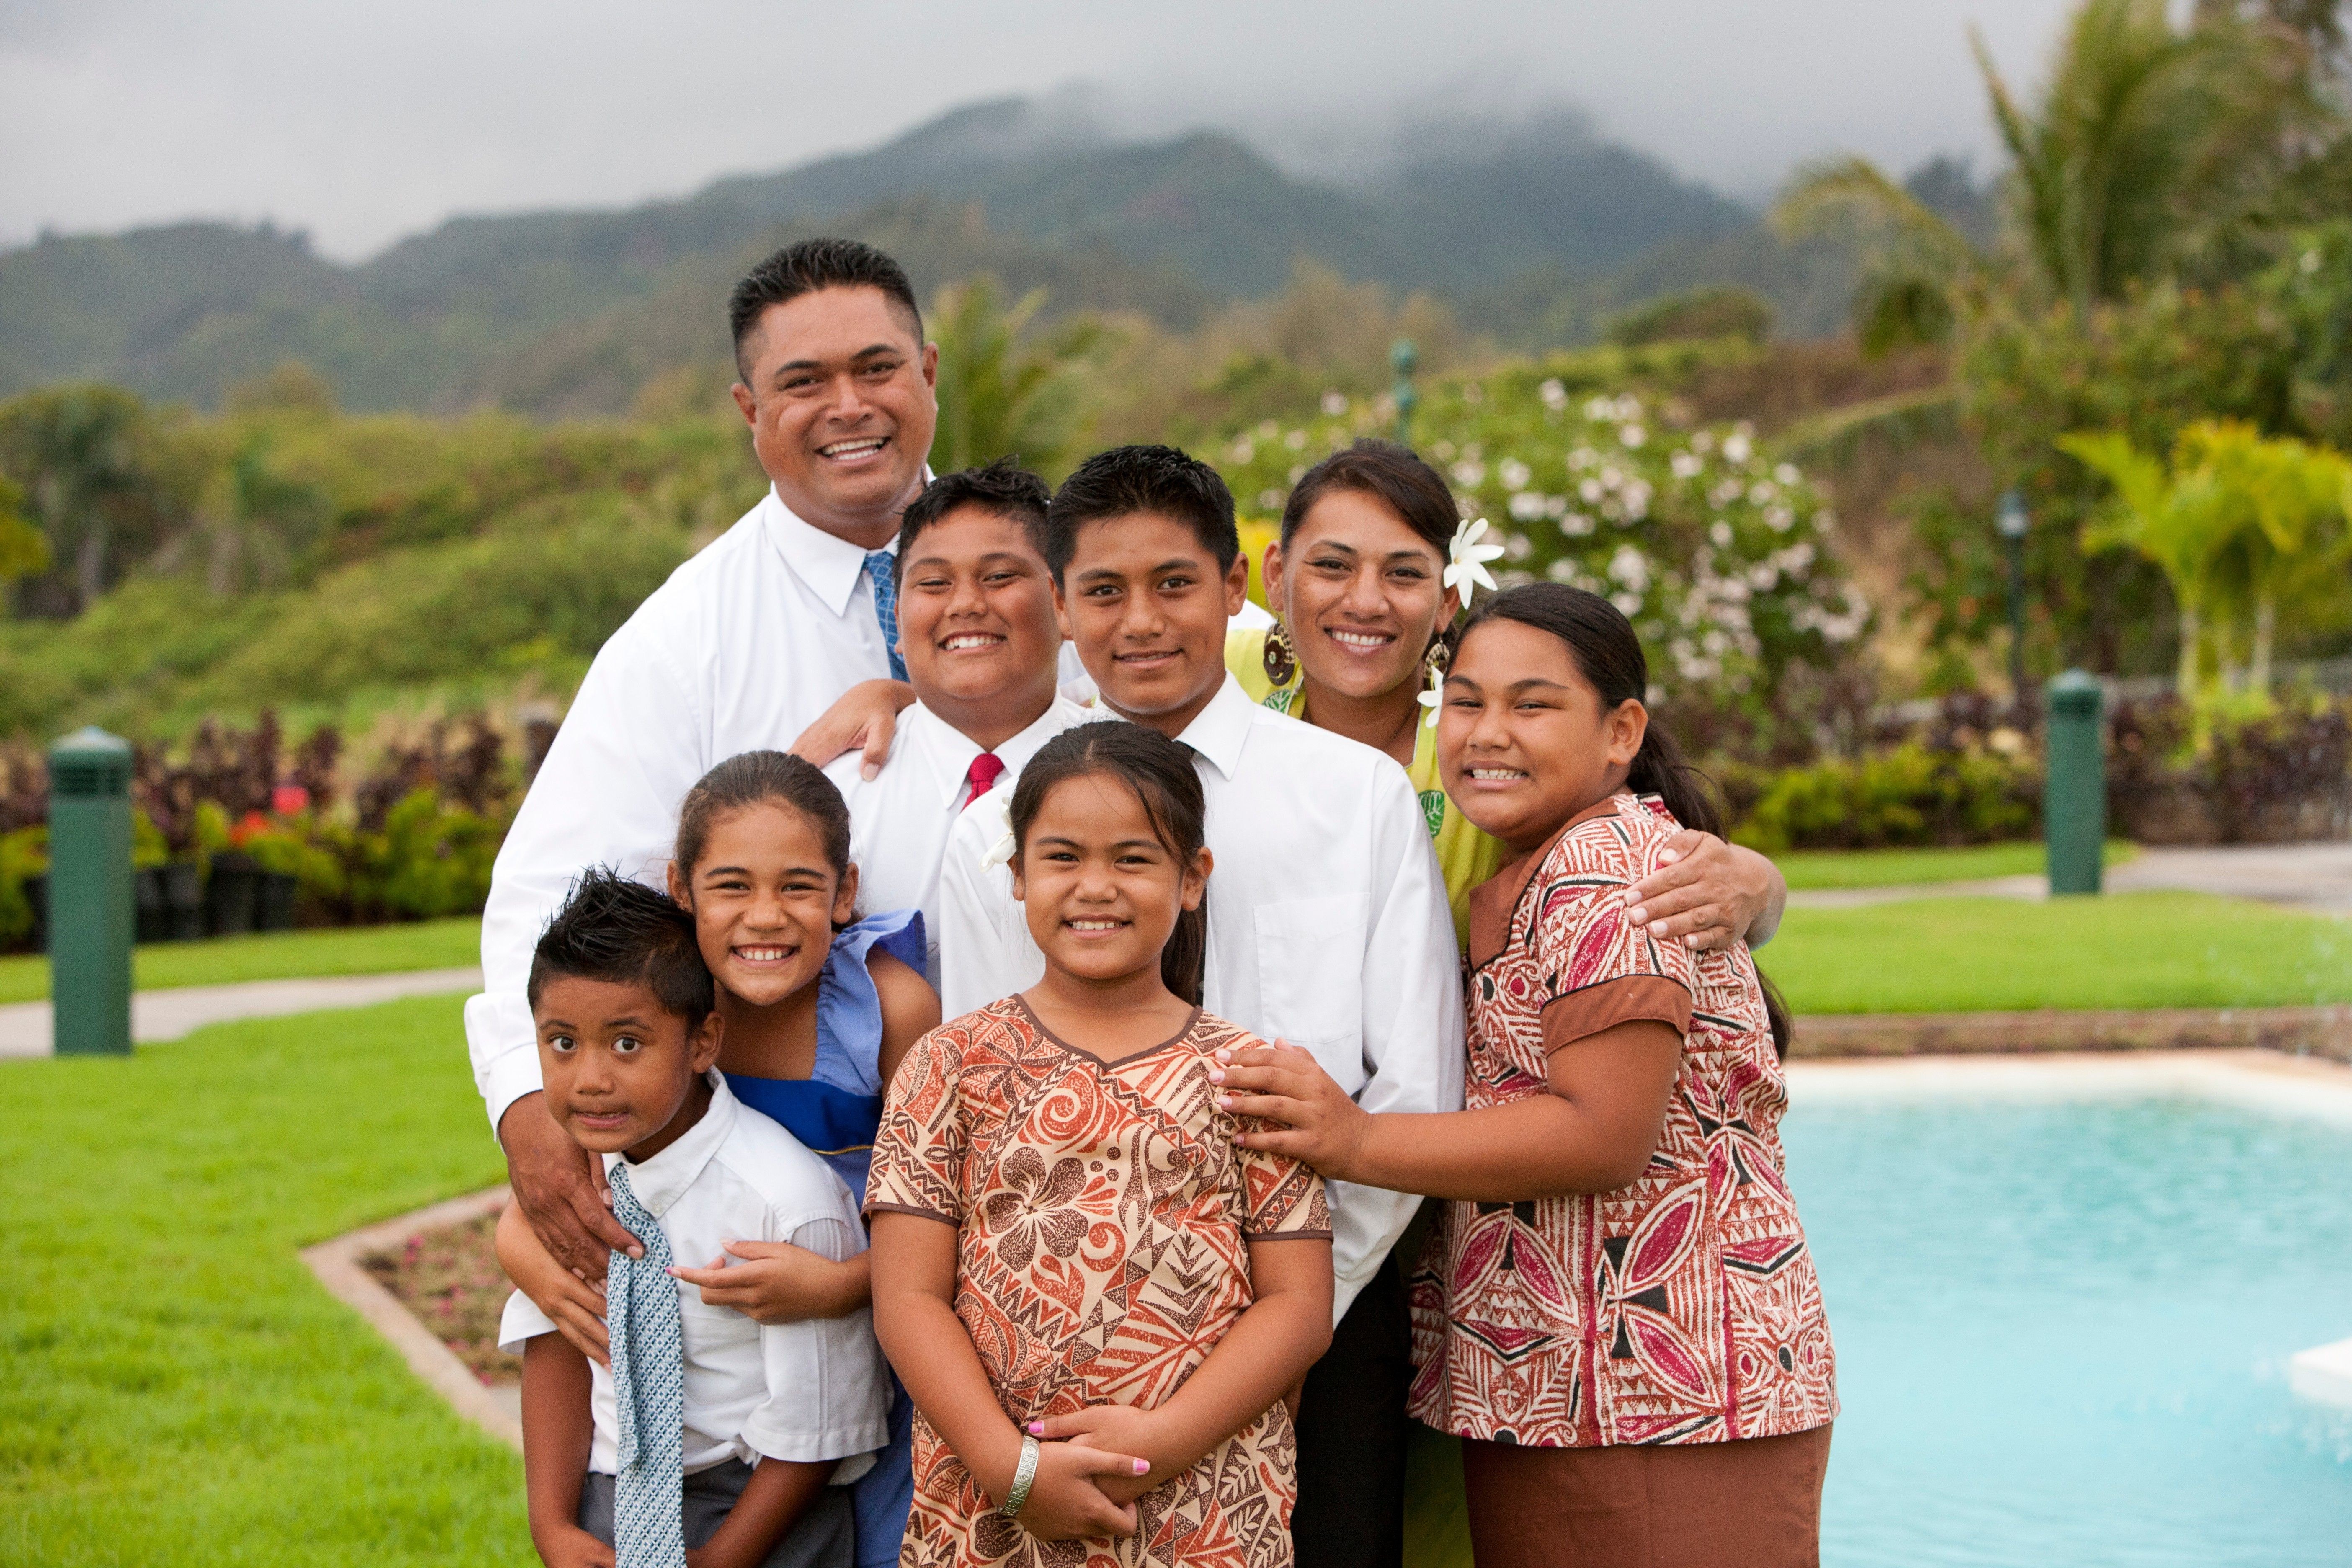 An outdoor portrait of a family of eight in Hawaii.